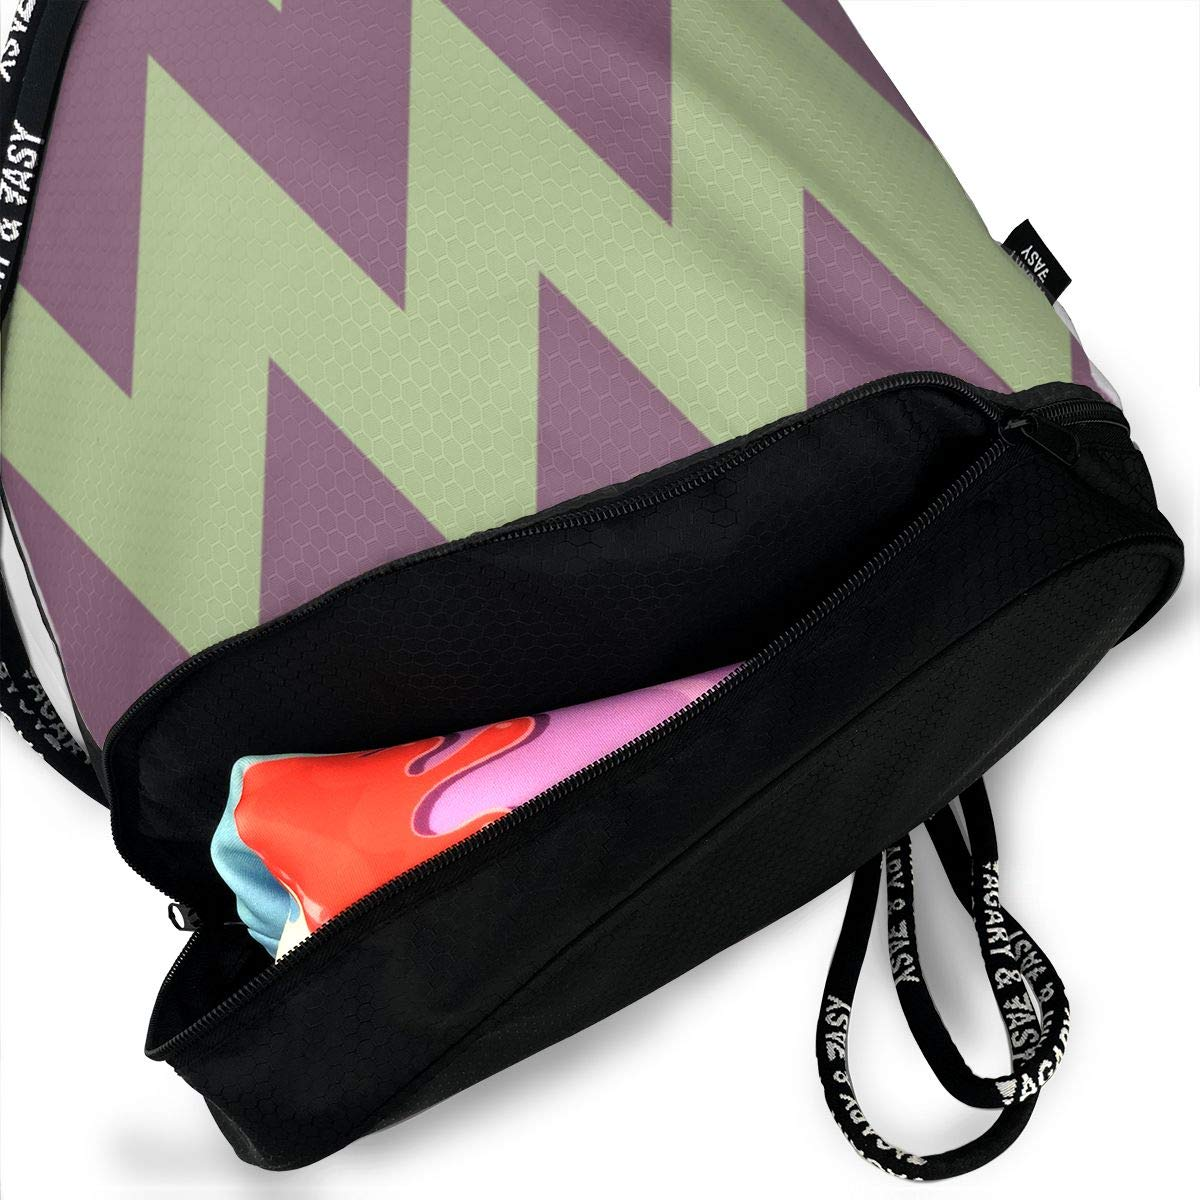 Simplicity Drawstring Backpack Sports Athletic Gym Cinch Sack String Storage Bags for Hiking Travel Beach